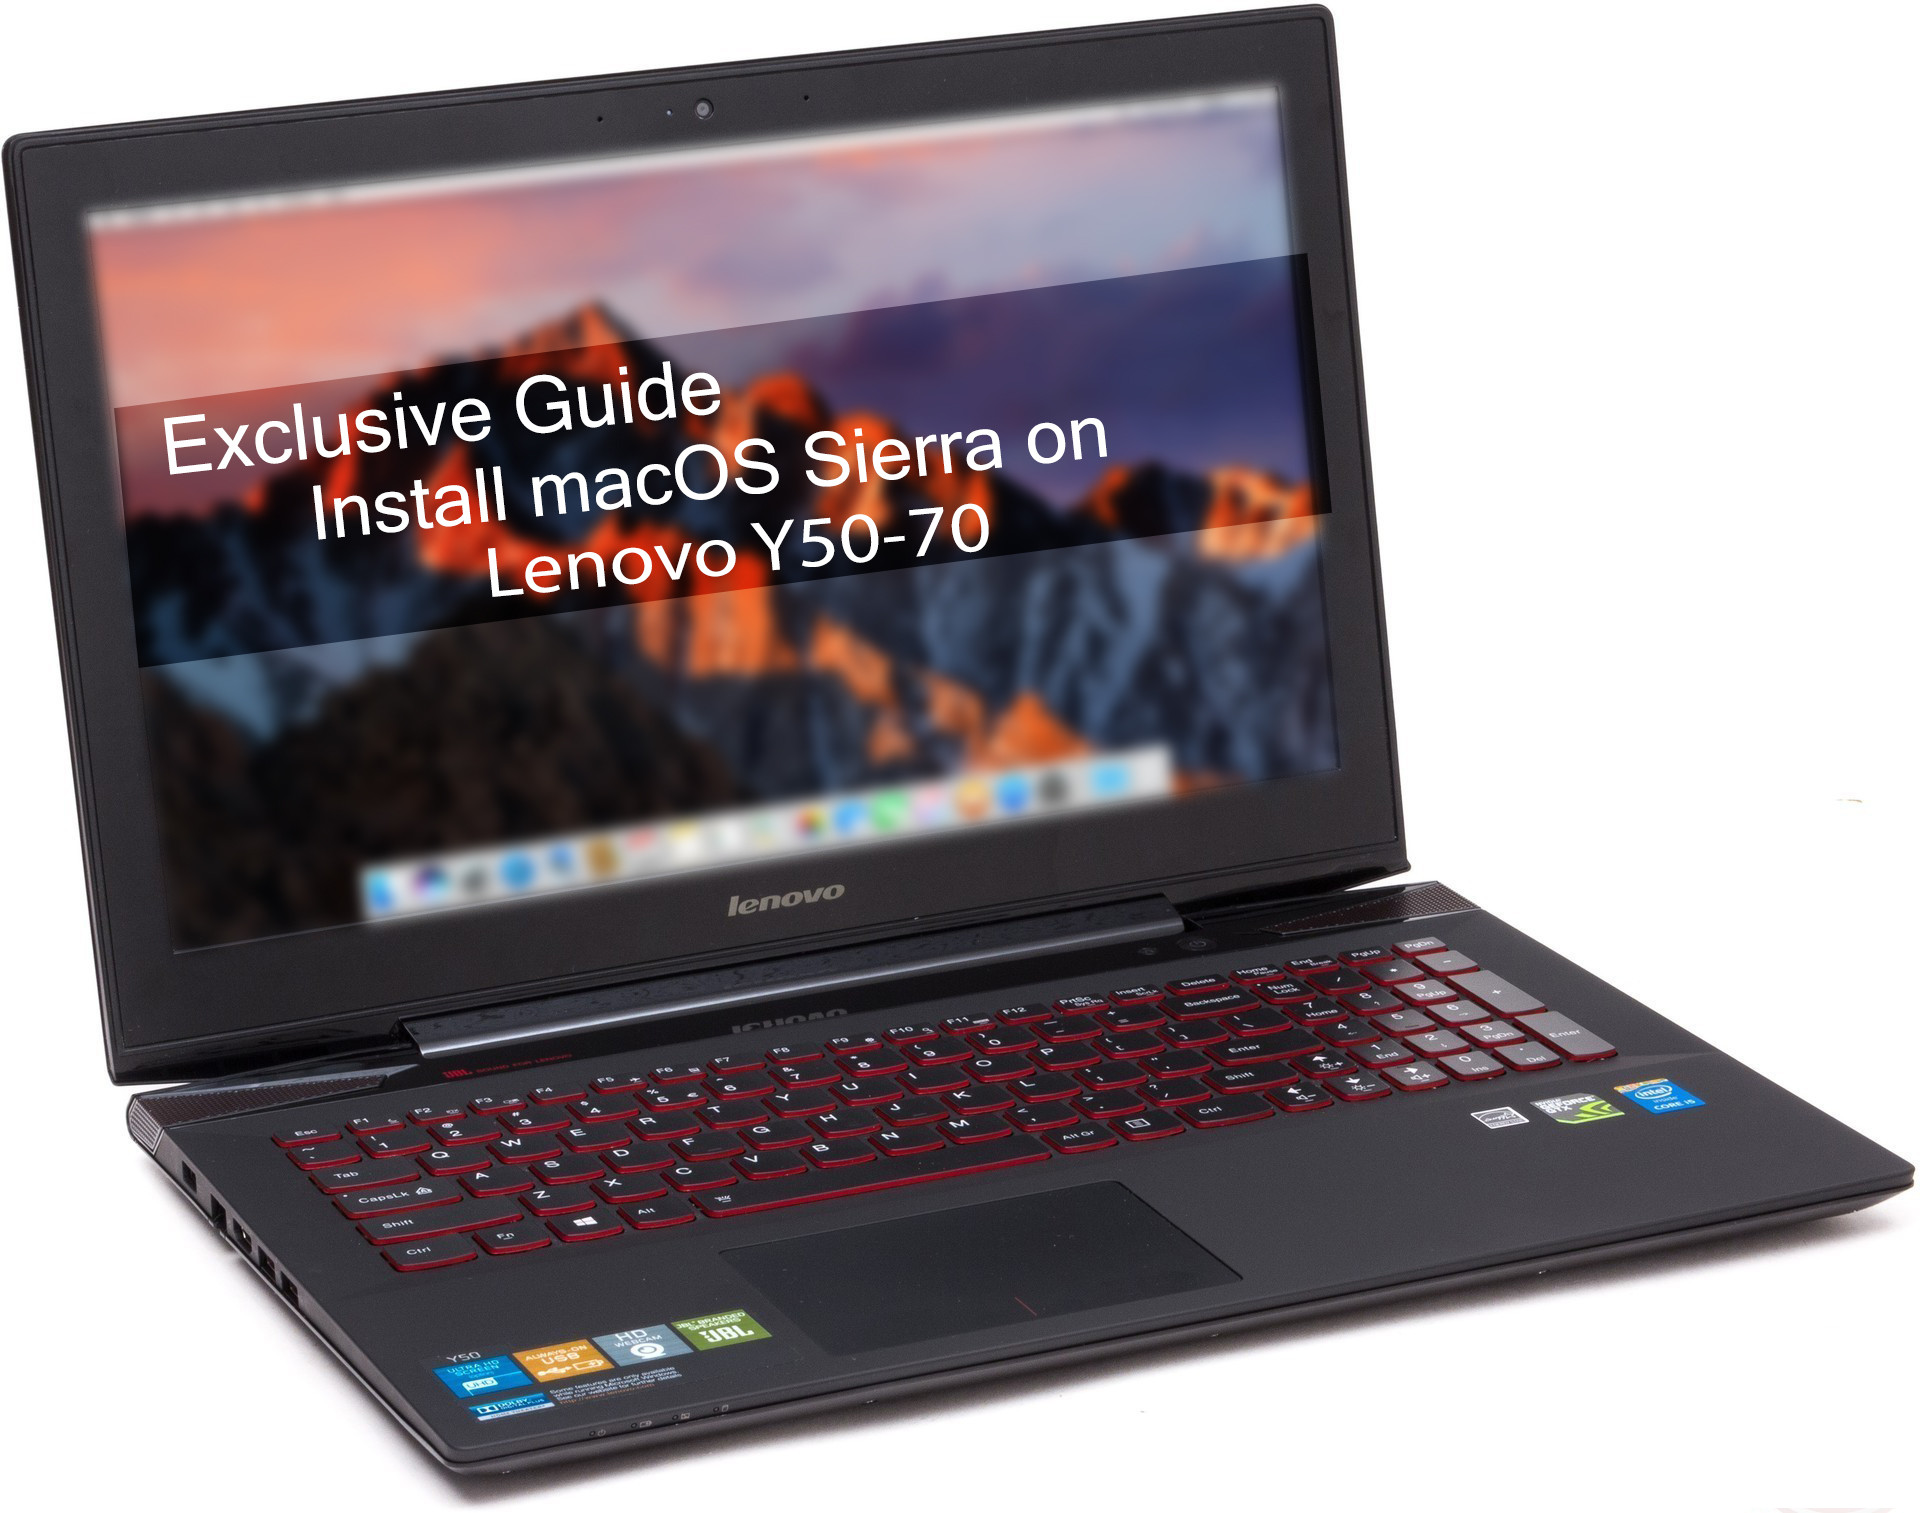 [Exclusive Guide] Install macOS Sierra on Lenovo Y50-70 (1080p-UHD)